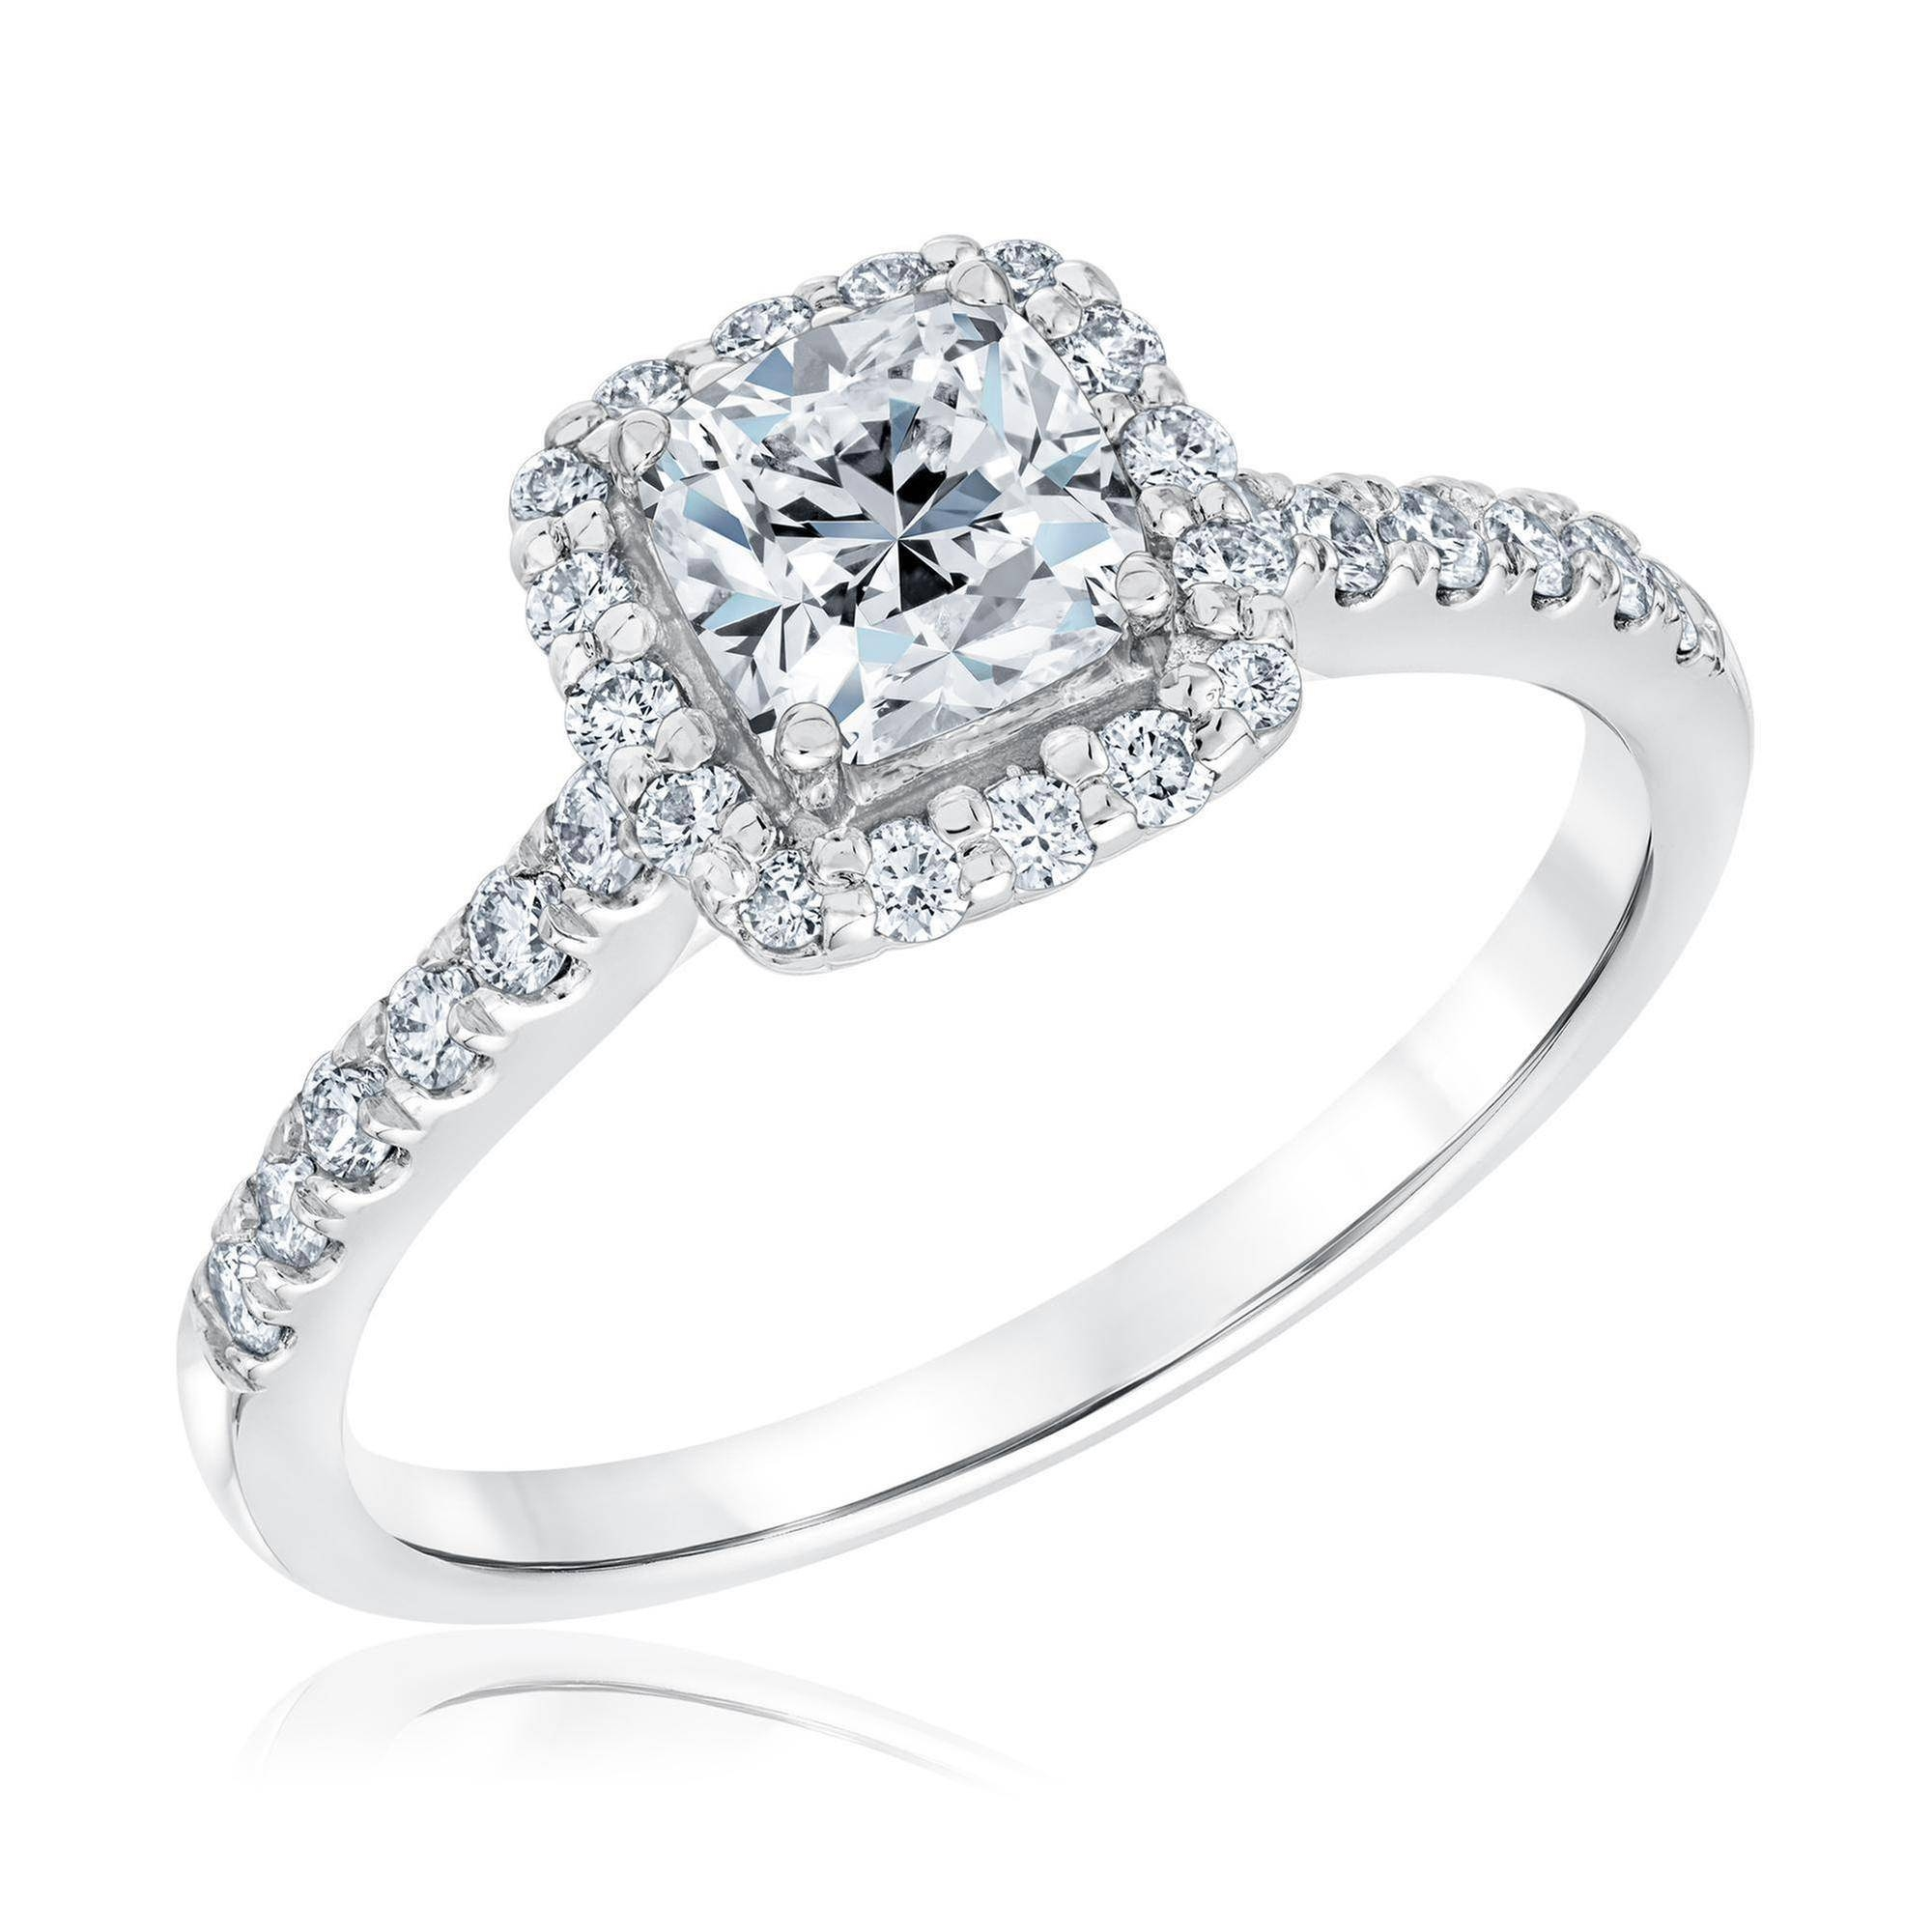 Rings Page 1 | Reeds Jewelers Pertaining To Most Up To Date Anniversary Rings For Her (View 18 of 25)